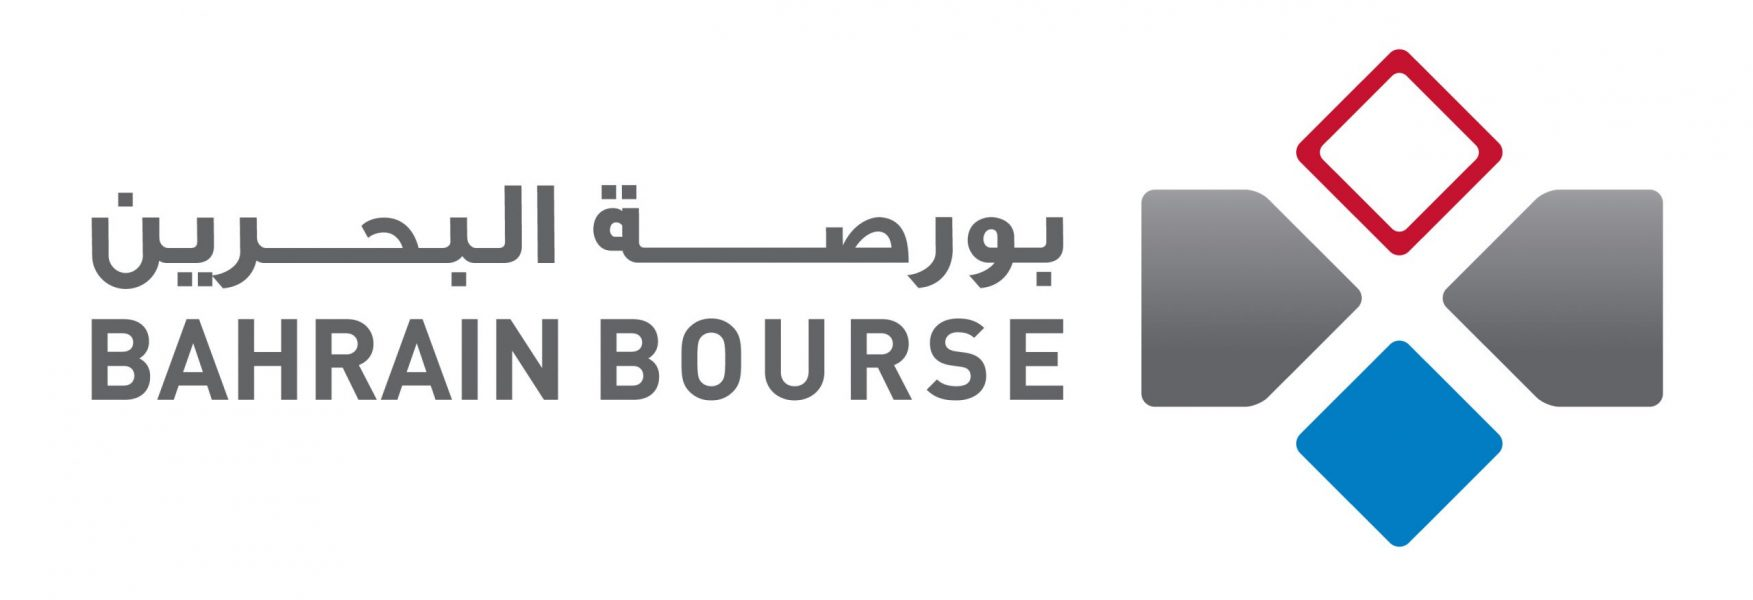 Bahrain-Bourse-Obtains-Approval-of-the-Central-Ban